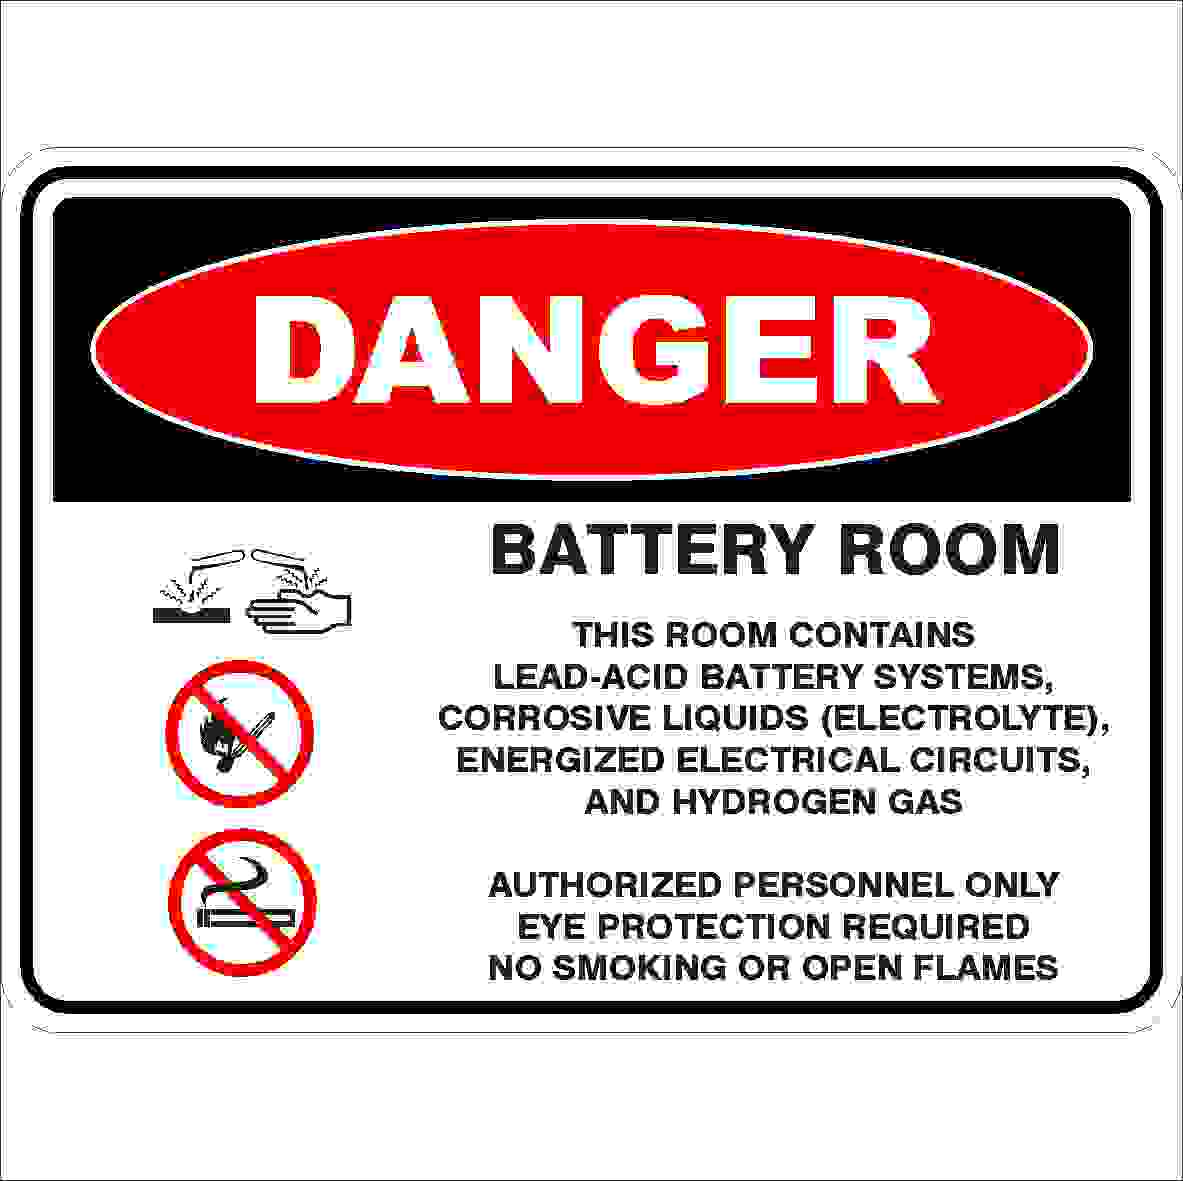 Battery Room Detailed Discount Safety Signs Australia